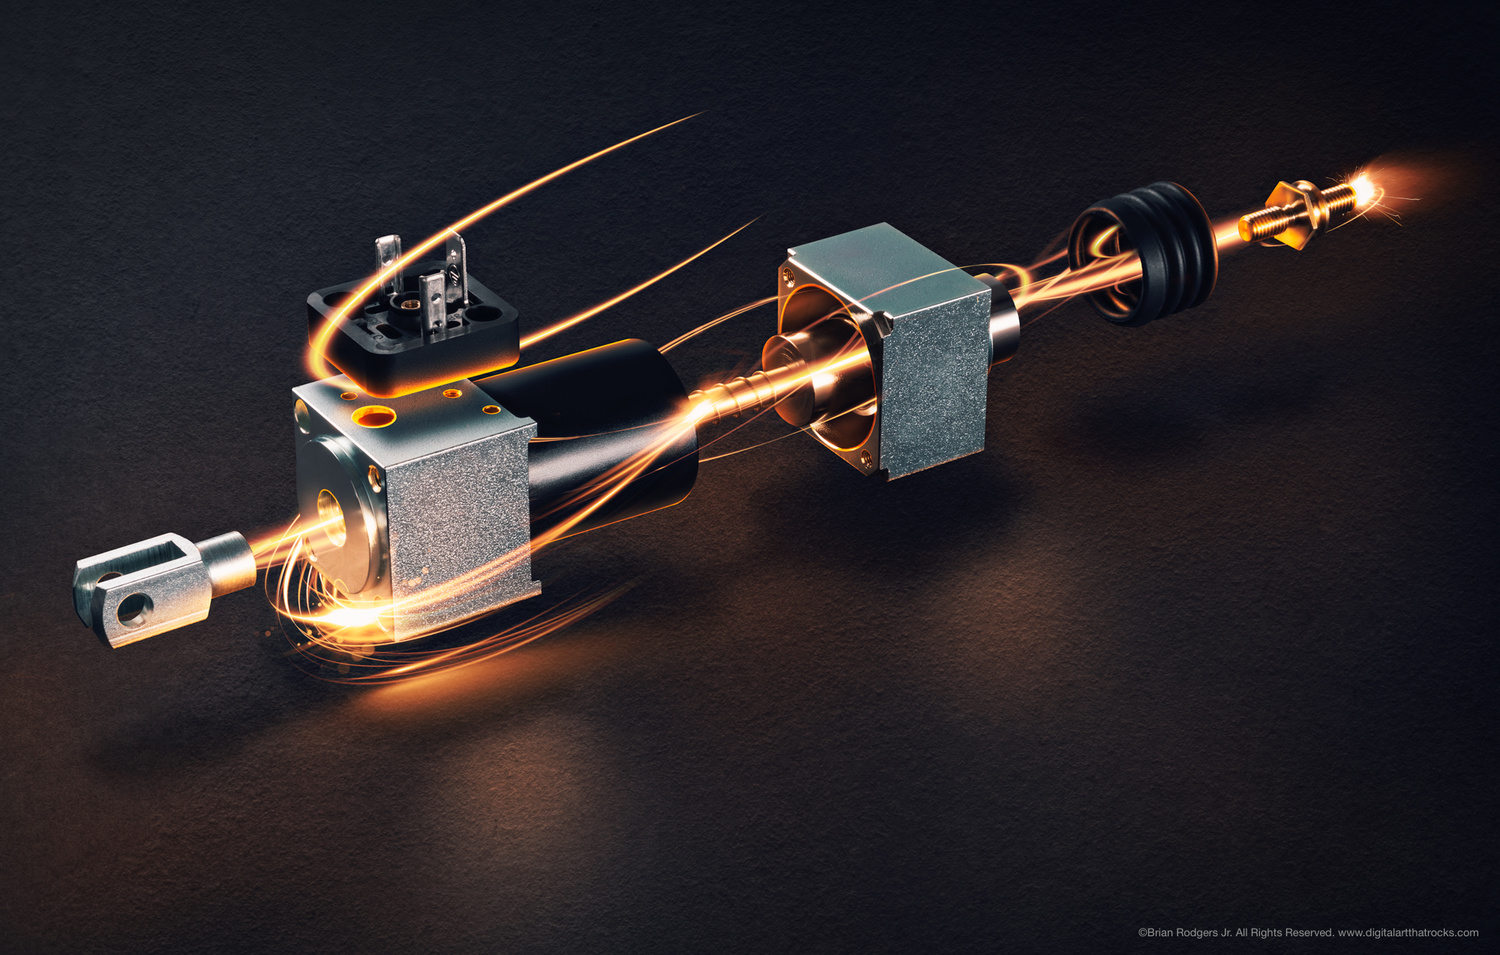 Solenoid Steam Engine by Brian Rodgers Jr.